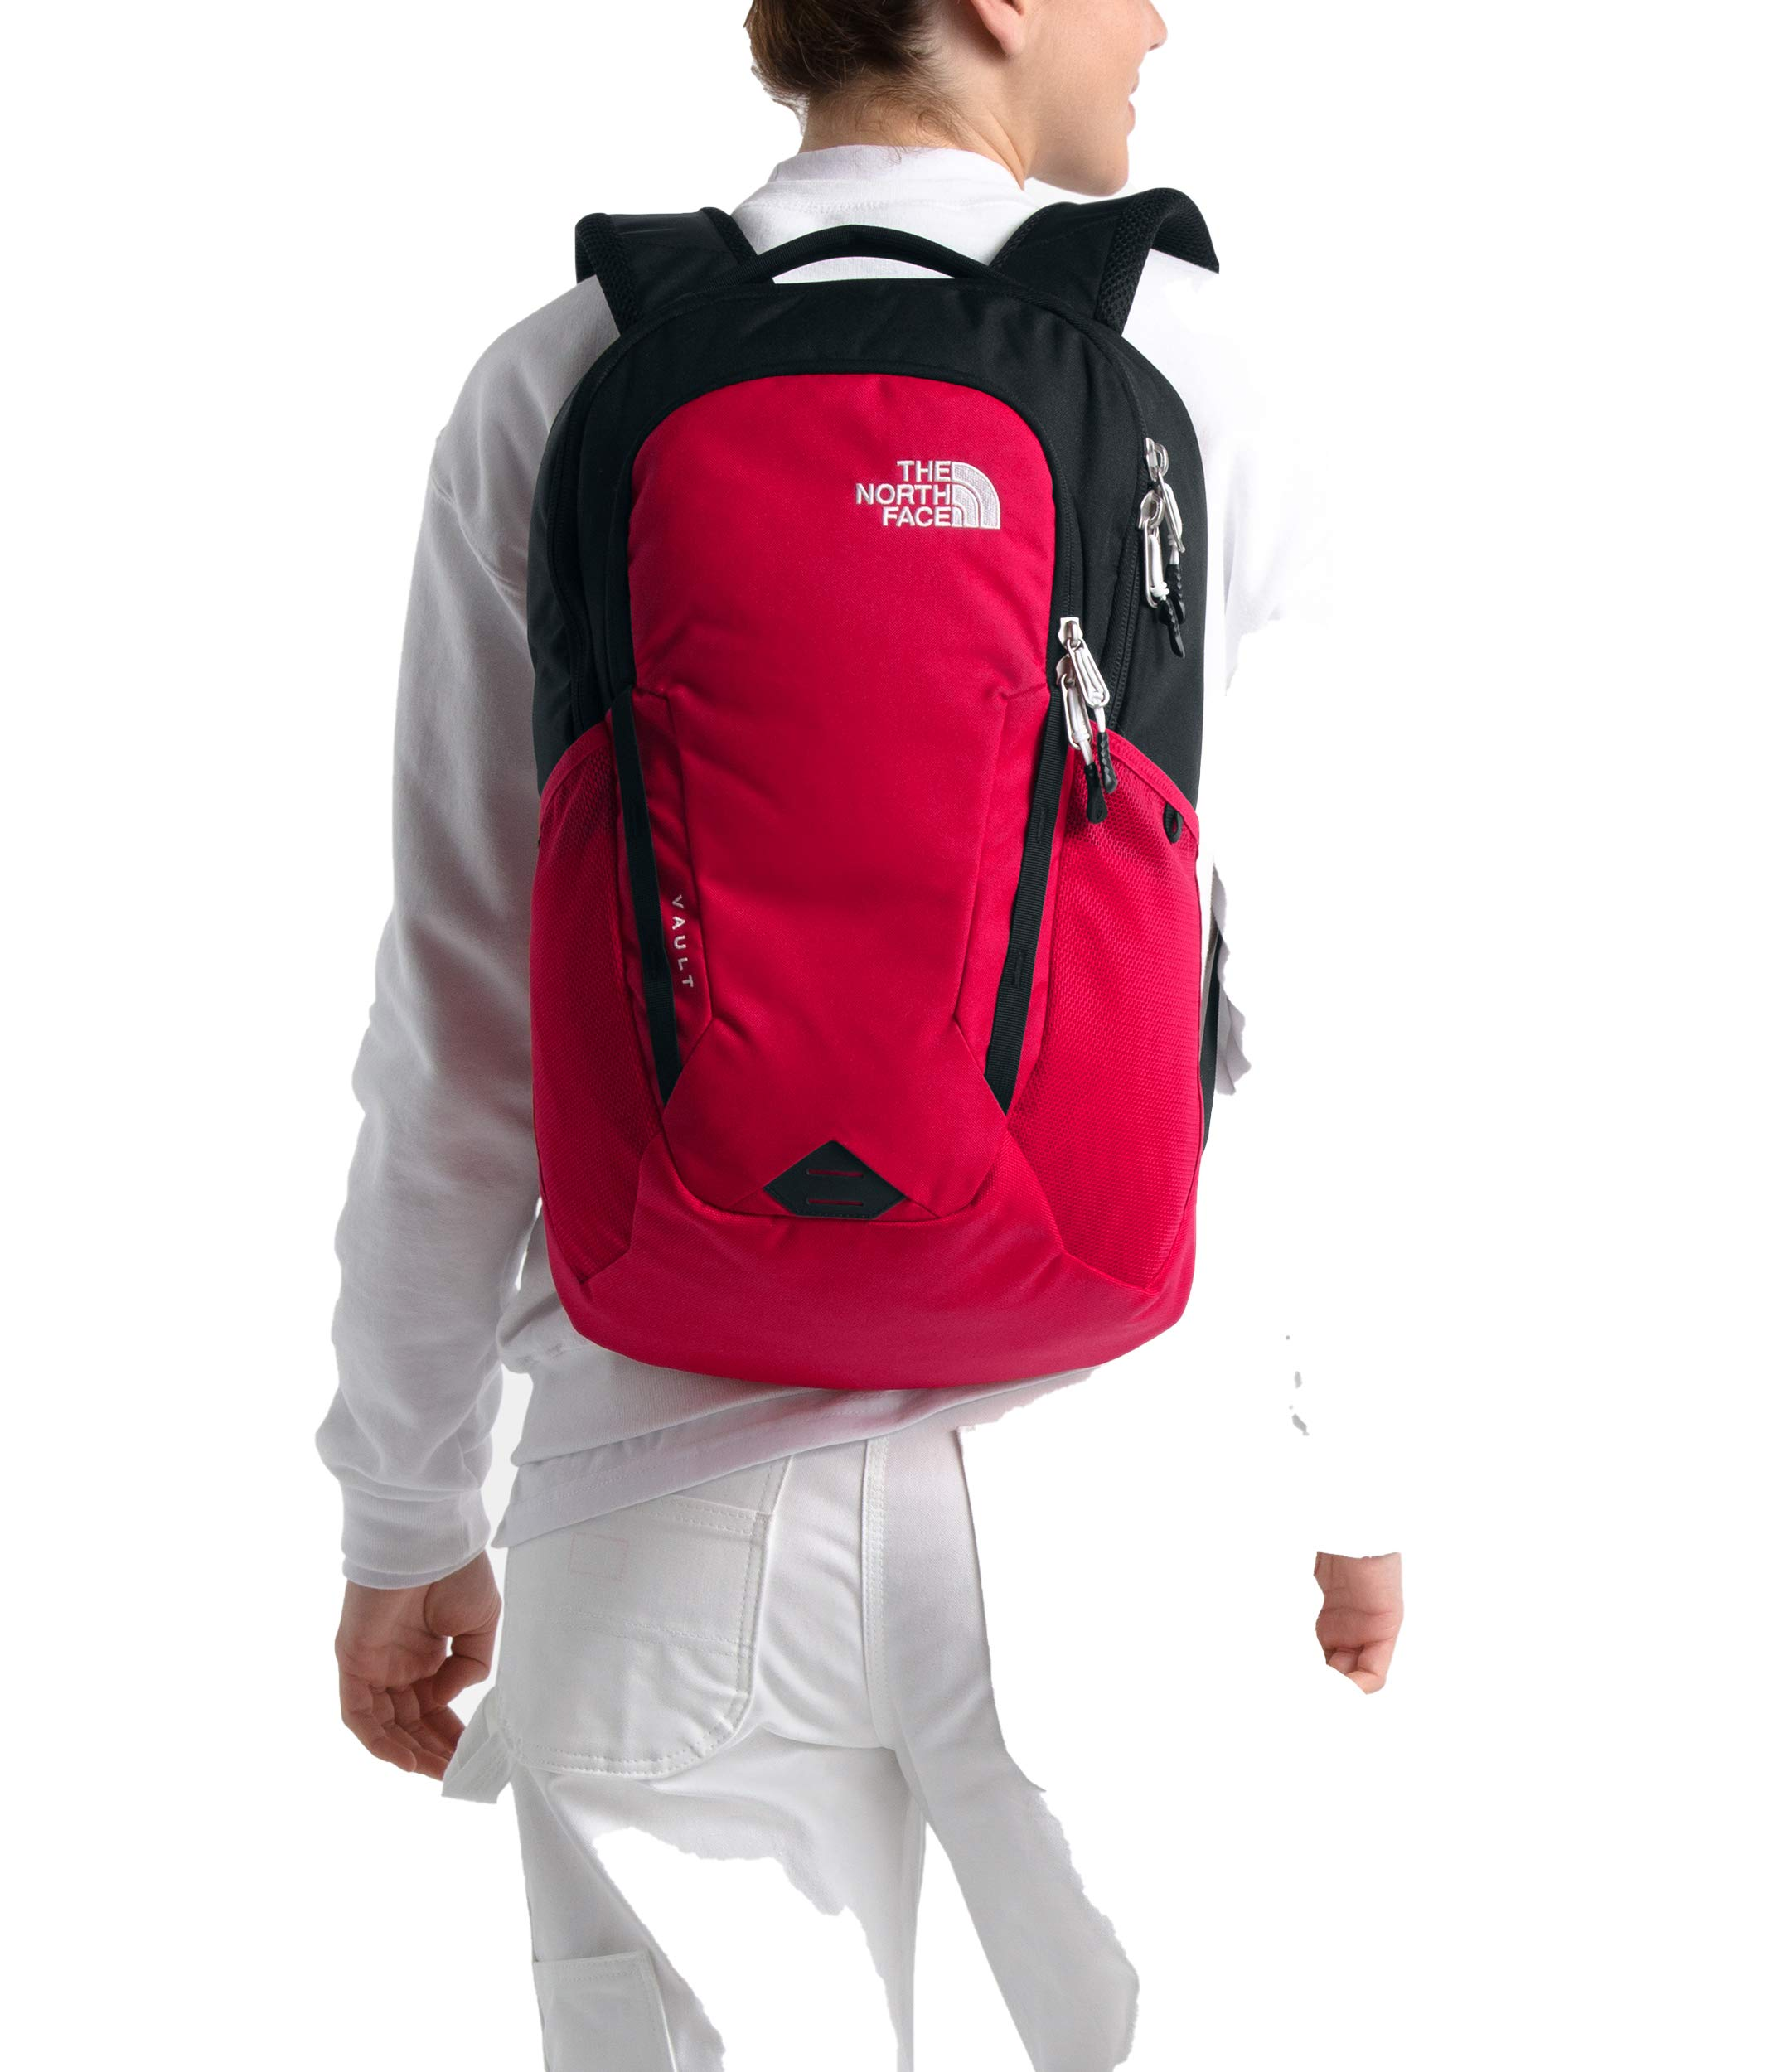 The North Face Vault, TNF Red/TNF Black, OS by The North Face